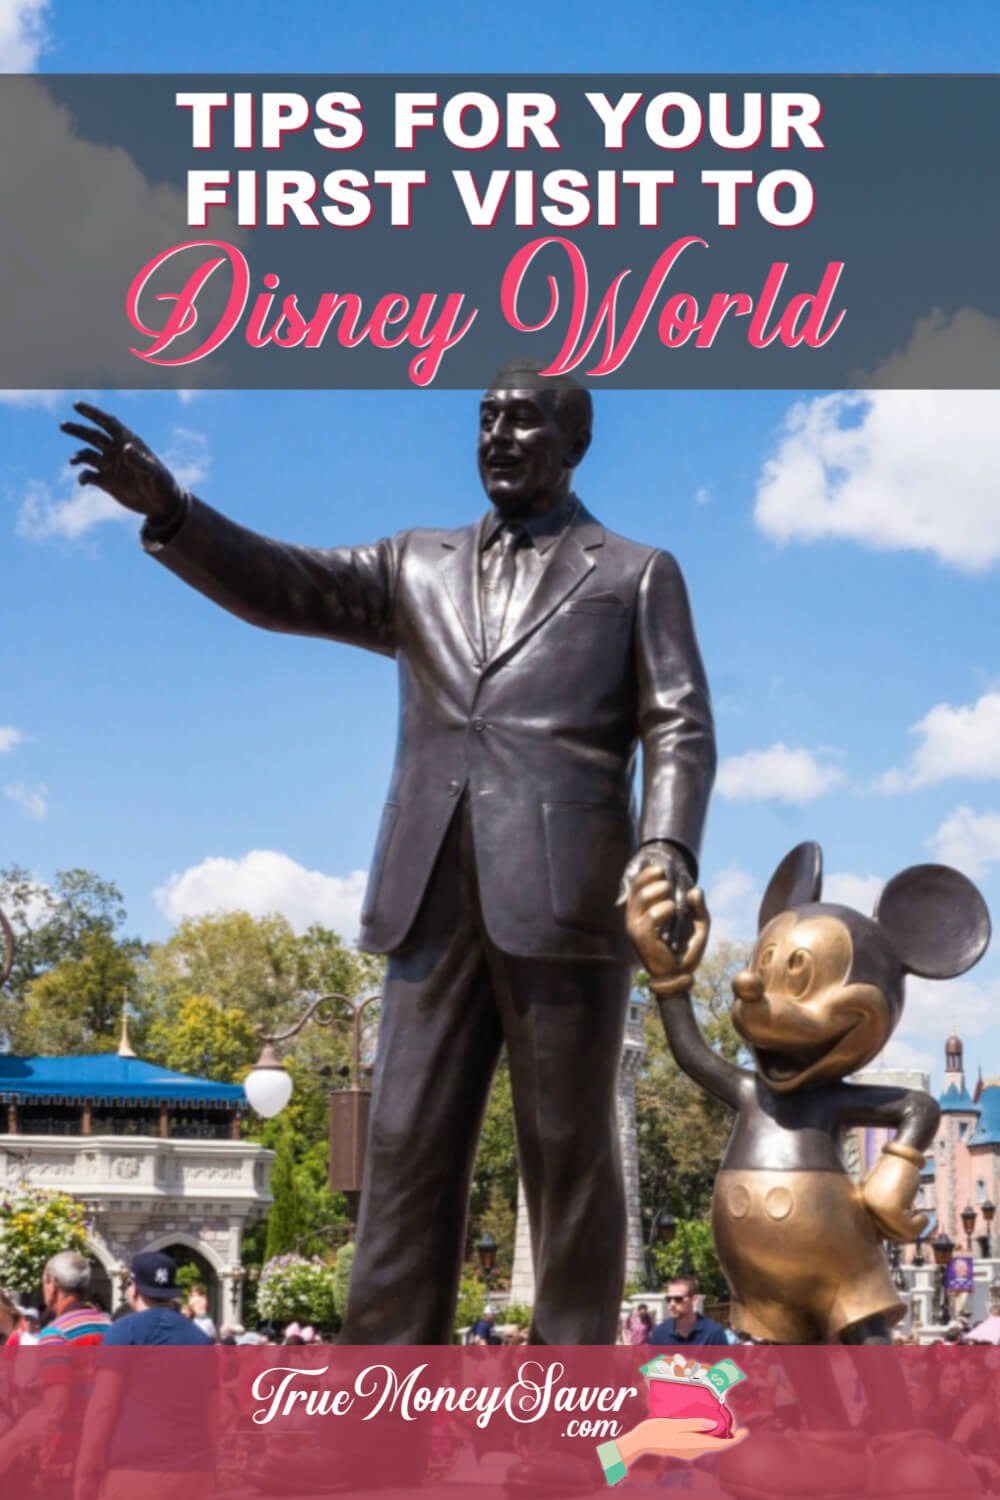 There is so much to do at Disney World that it's easy to get caught up in the magic. Use these tips to get the most out of your Disney vacation! #disneyvacation #truemoneysaver #savemoney #vacation #disney #vacation #familyvacation #vacations #florida #floridavacation